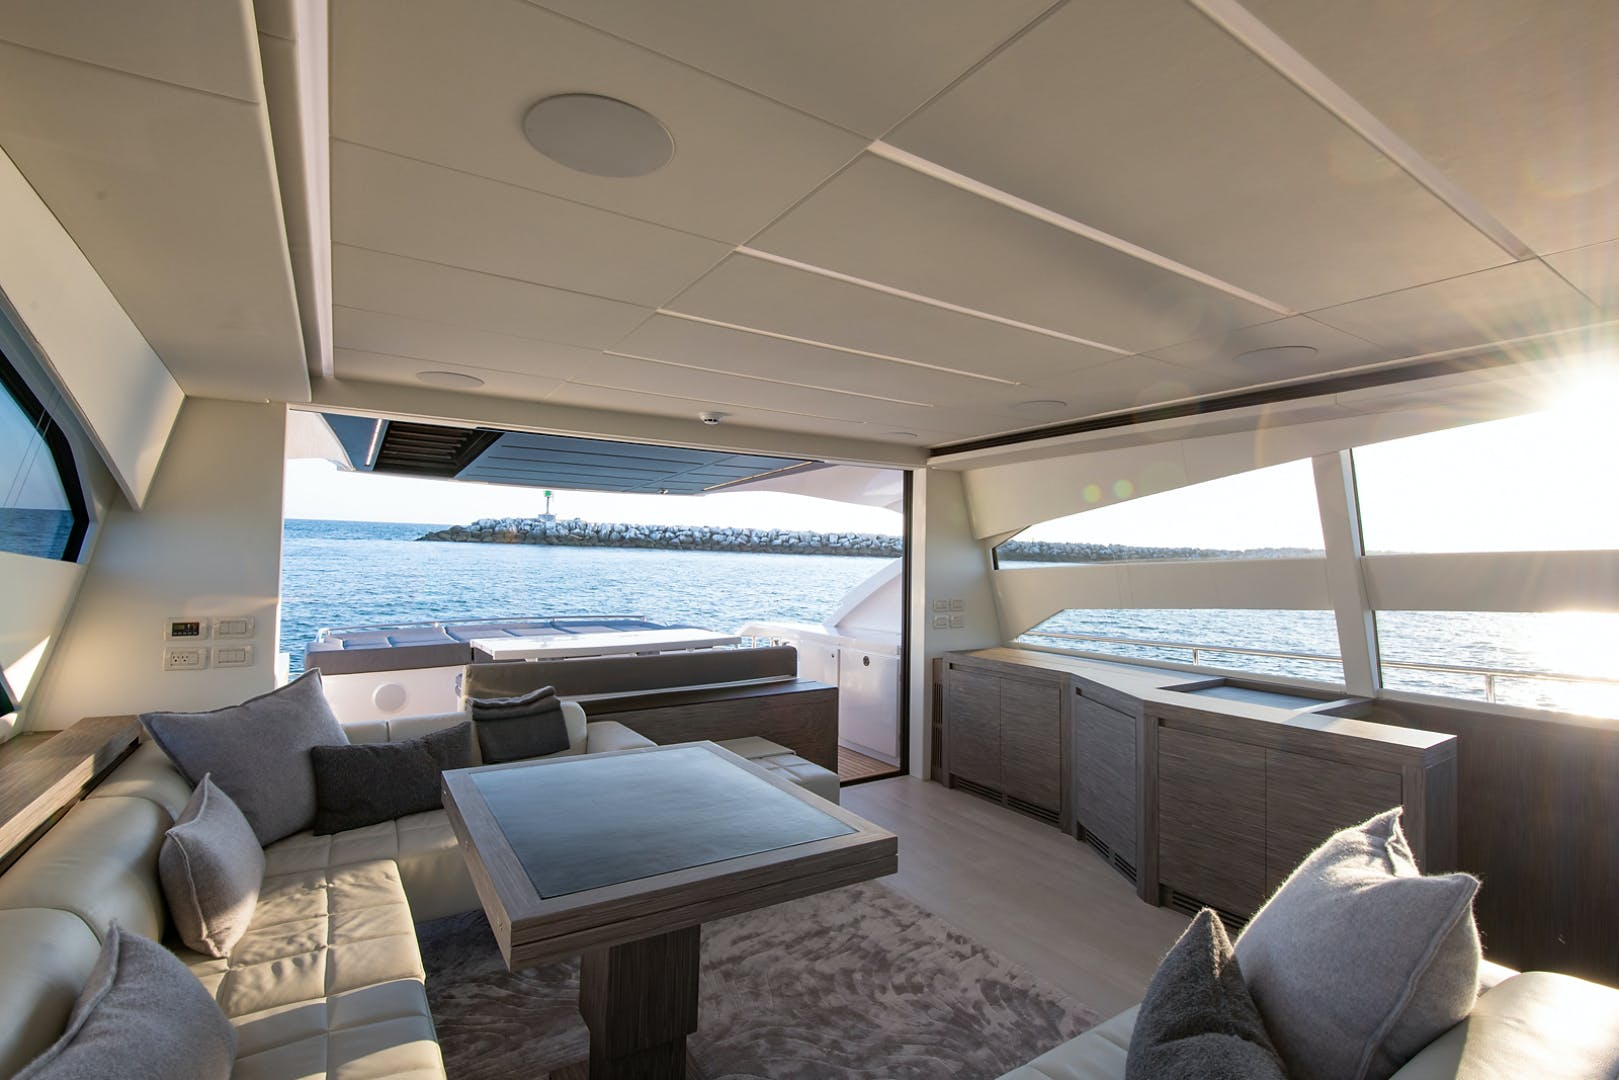 2017 Pershing 82' Pershing 82 Double or Nothing   Picture 8 of 41